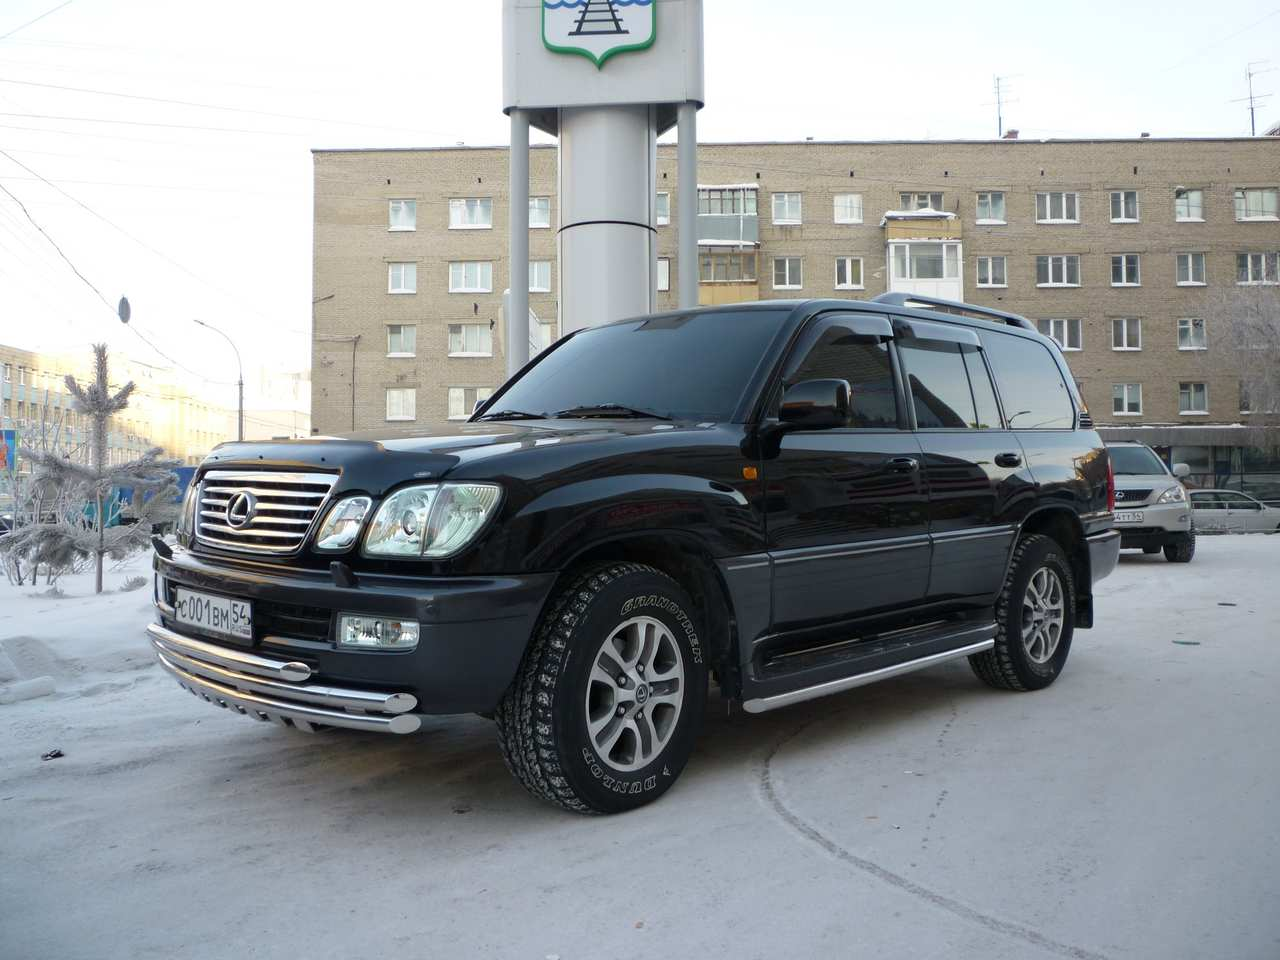 Lexus Lx 470 2008 Review Amazing Pictures And Images